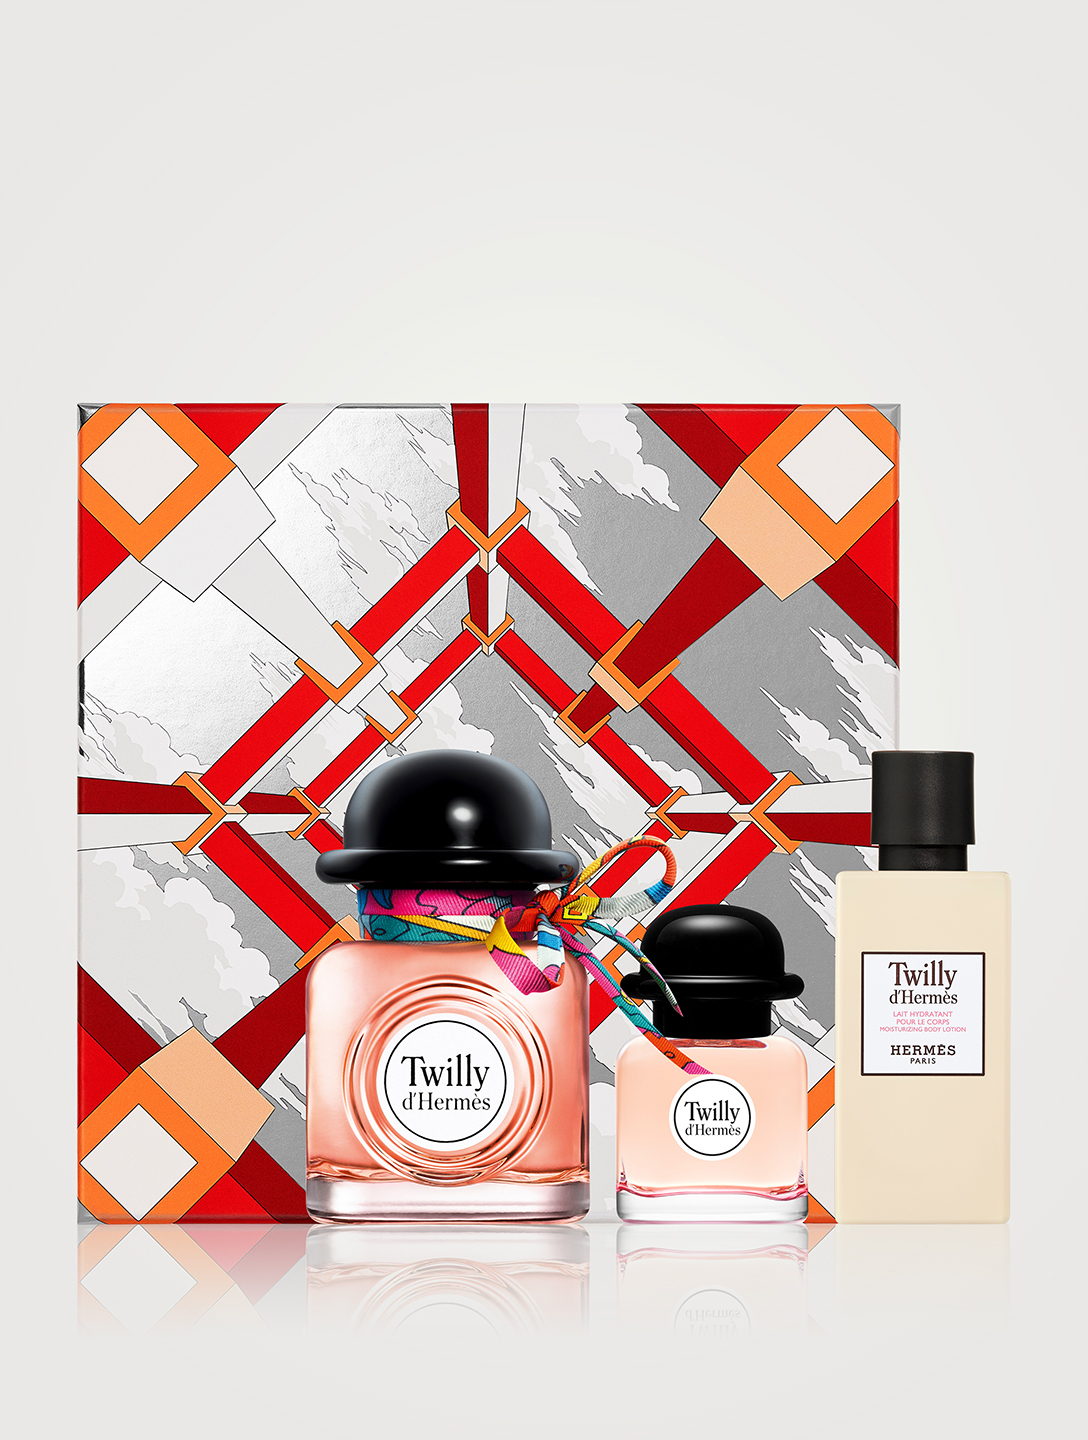 HERMÈS Twilly d'Hermès Eau de Parfum Gift Set Beauty